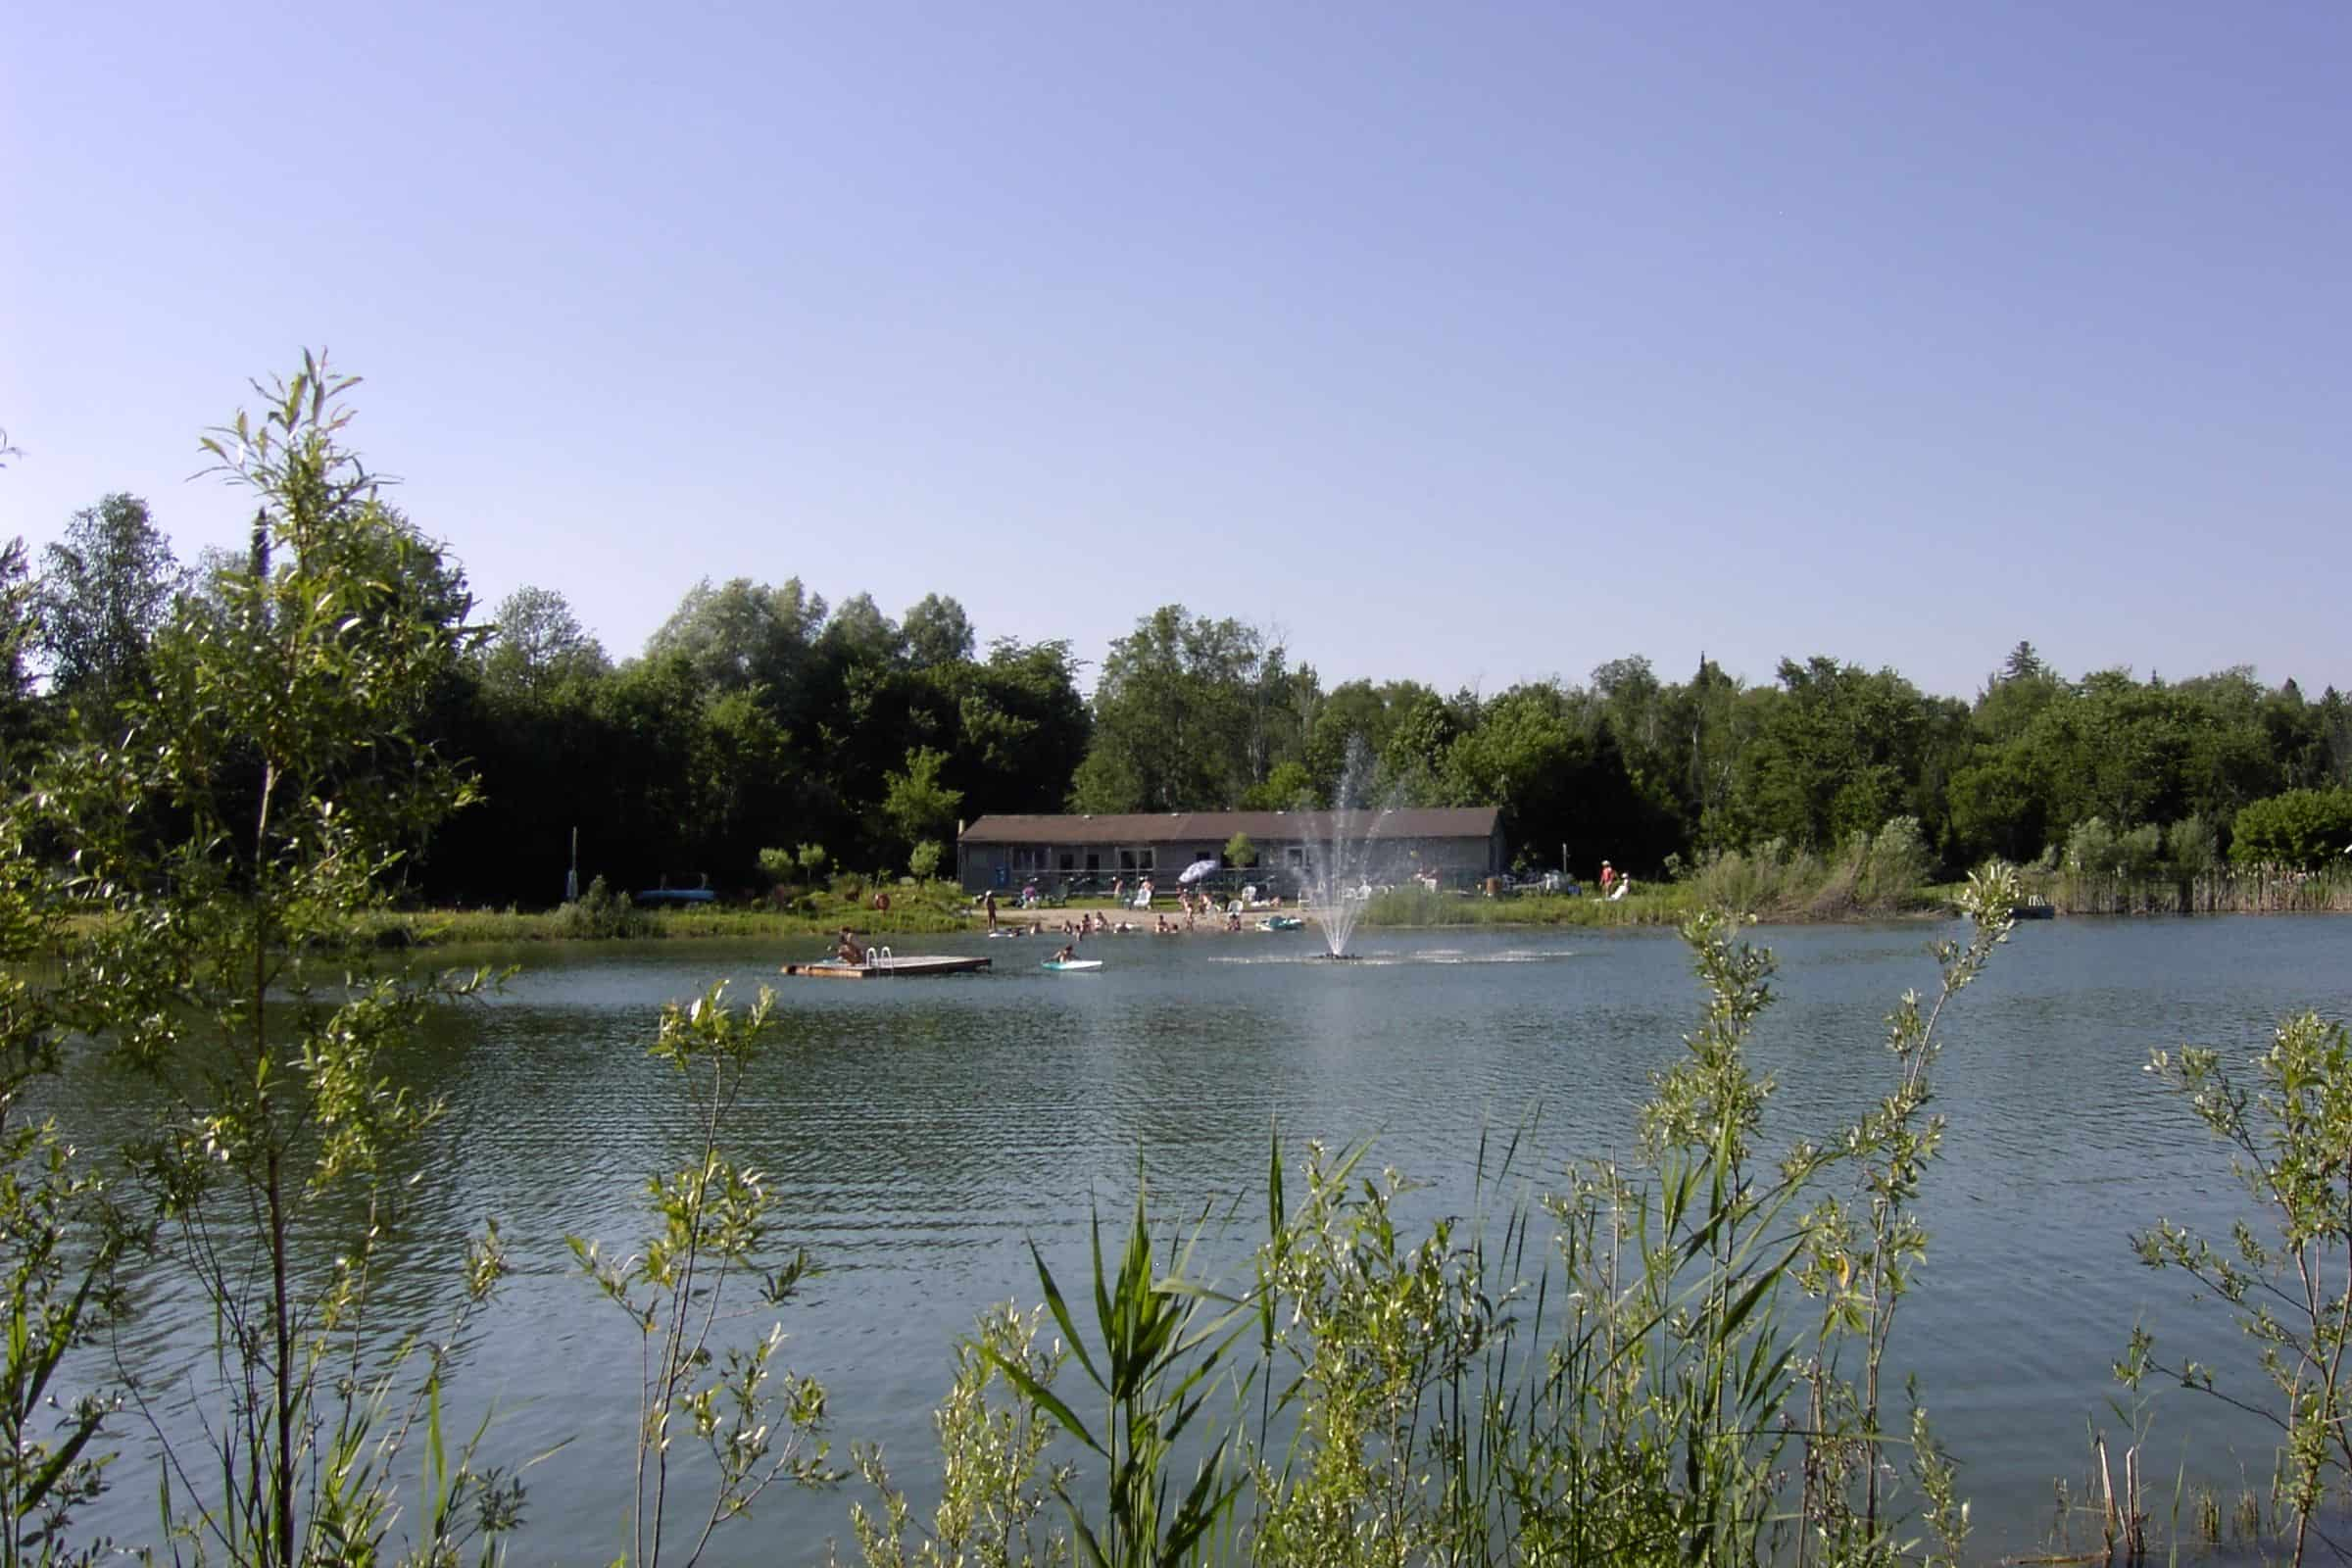 Bare Oaks Family Naturist Park - Attractions Ontario-2895